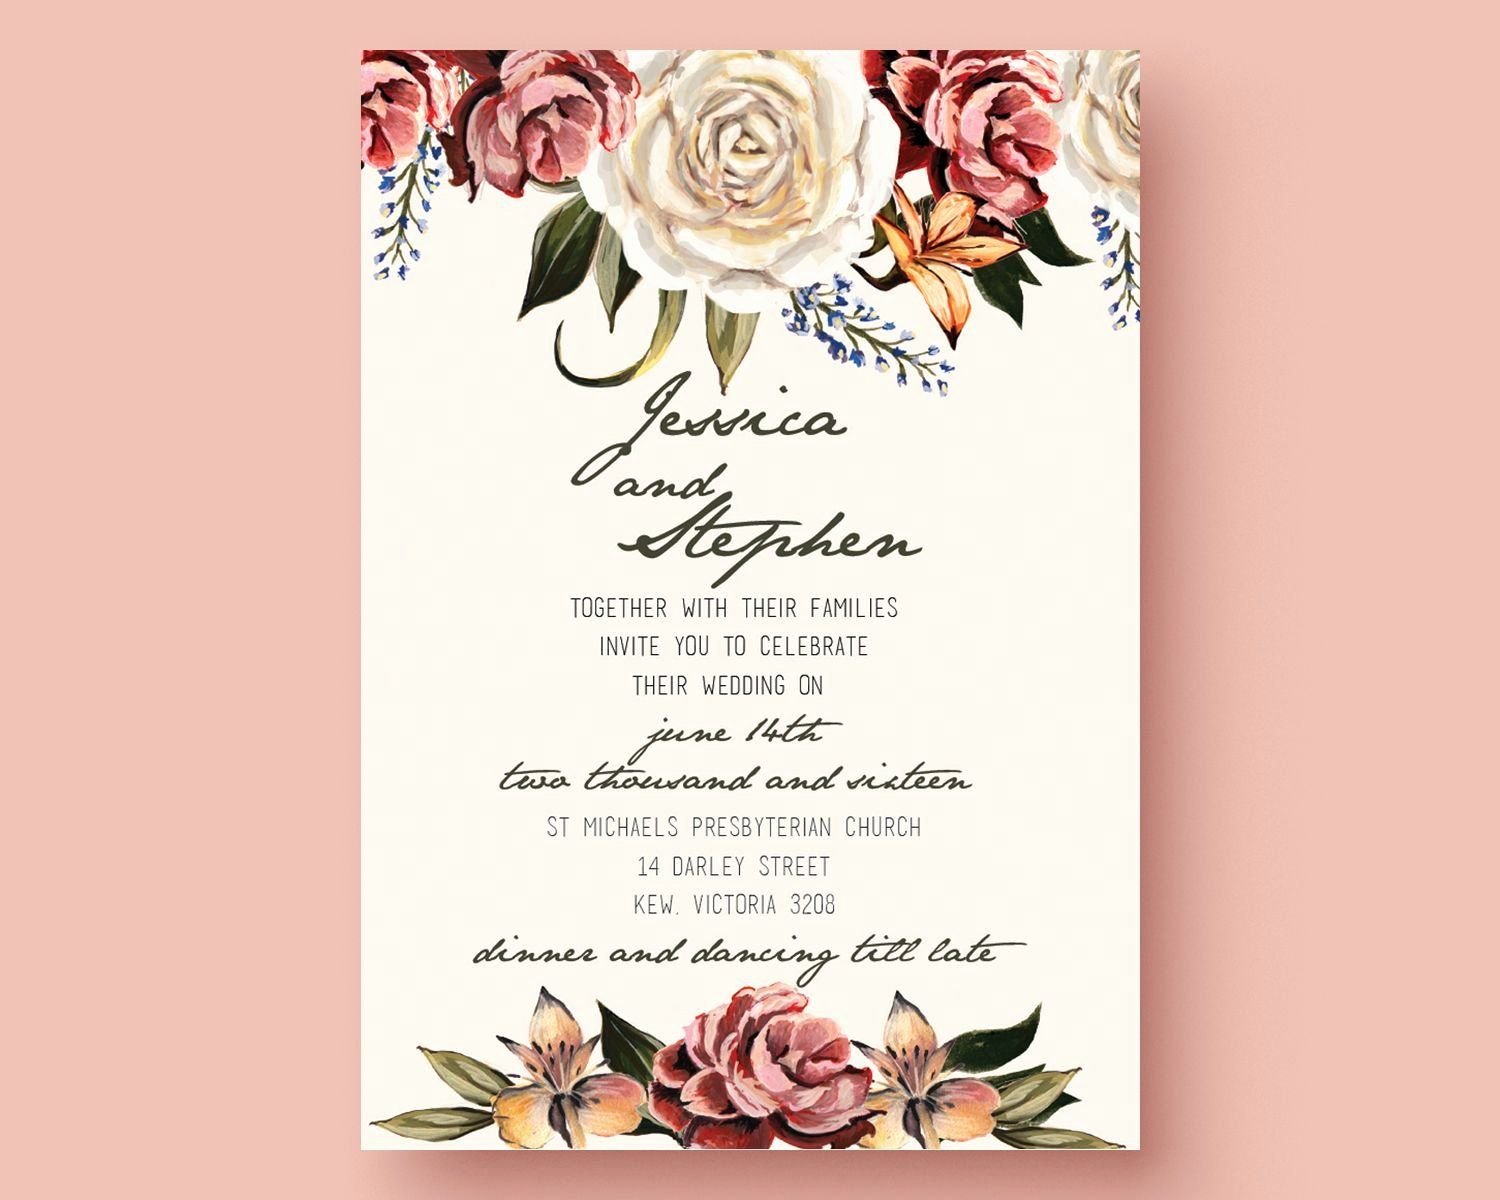 Wedding Invitation Template Free Download Luxury Get The Template F Free Wedding Invitations Free Wedding Invitation Templates Wedding Invitation Card Template